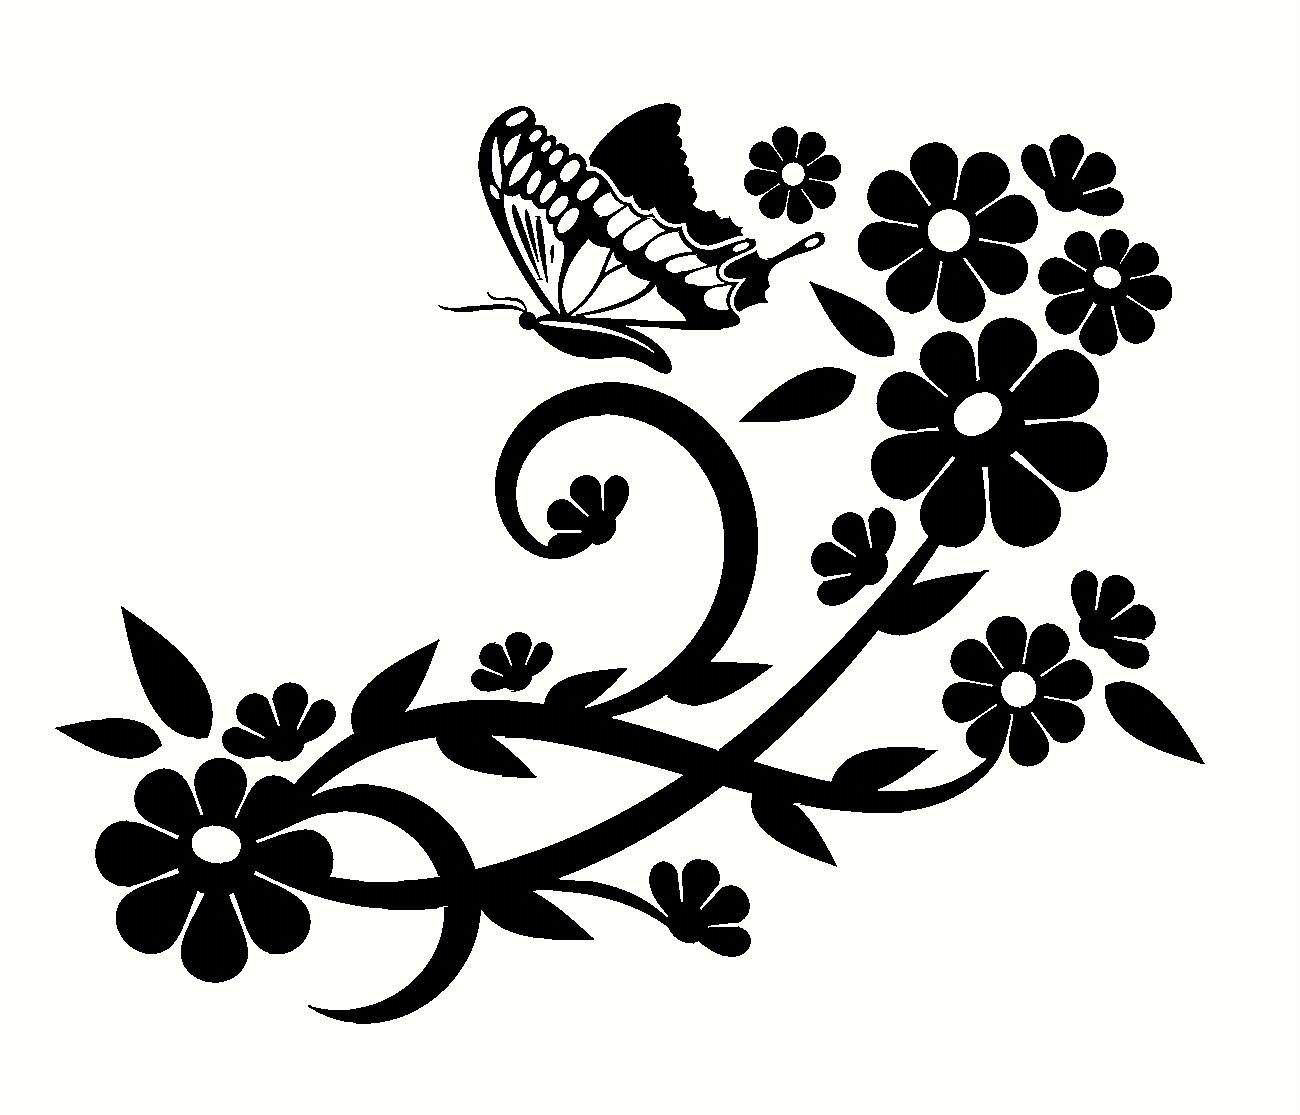 Fancy Floral Designs With ButterflyCustom Made Decal, Wall